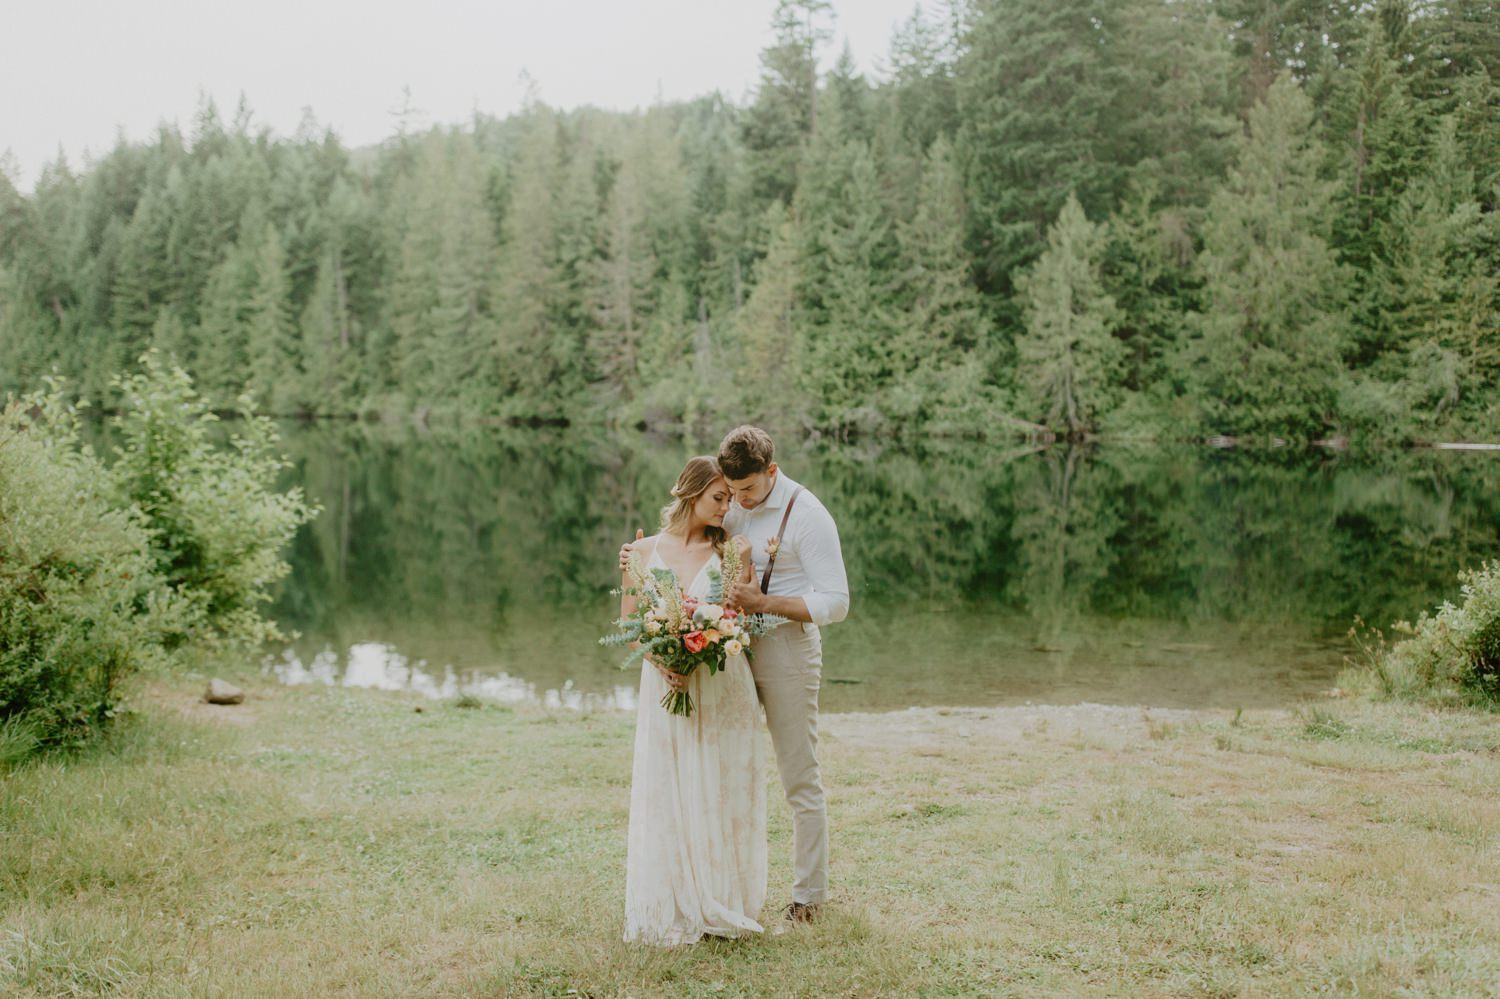 Tash Loves Mitch // Styled, Luke Liable  // Victoria & Vancouver Island Wedding Photographer